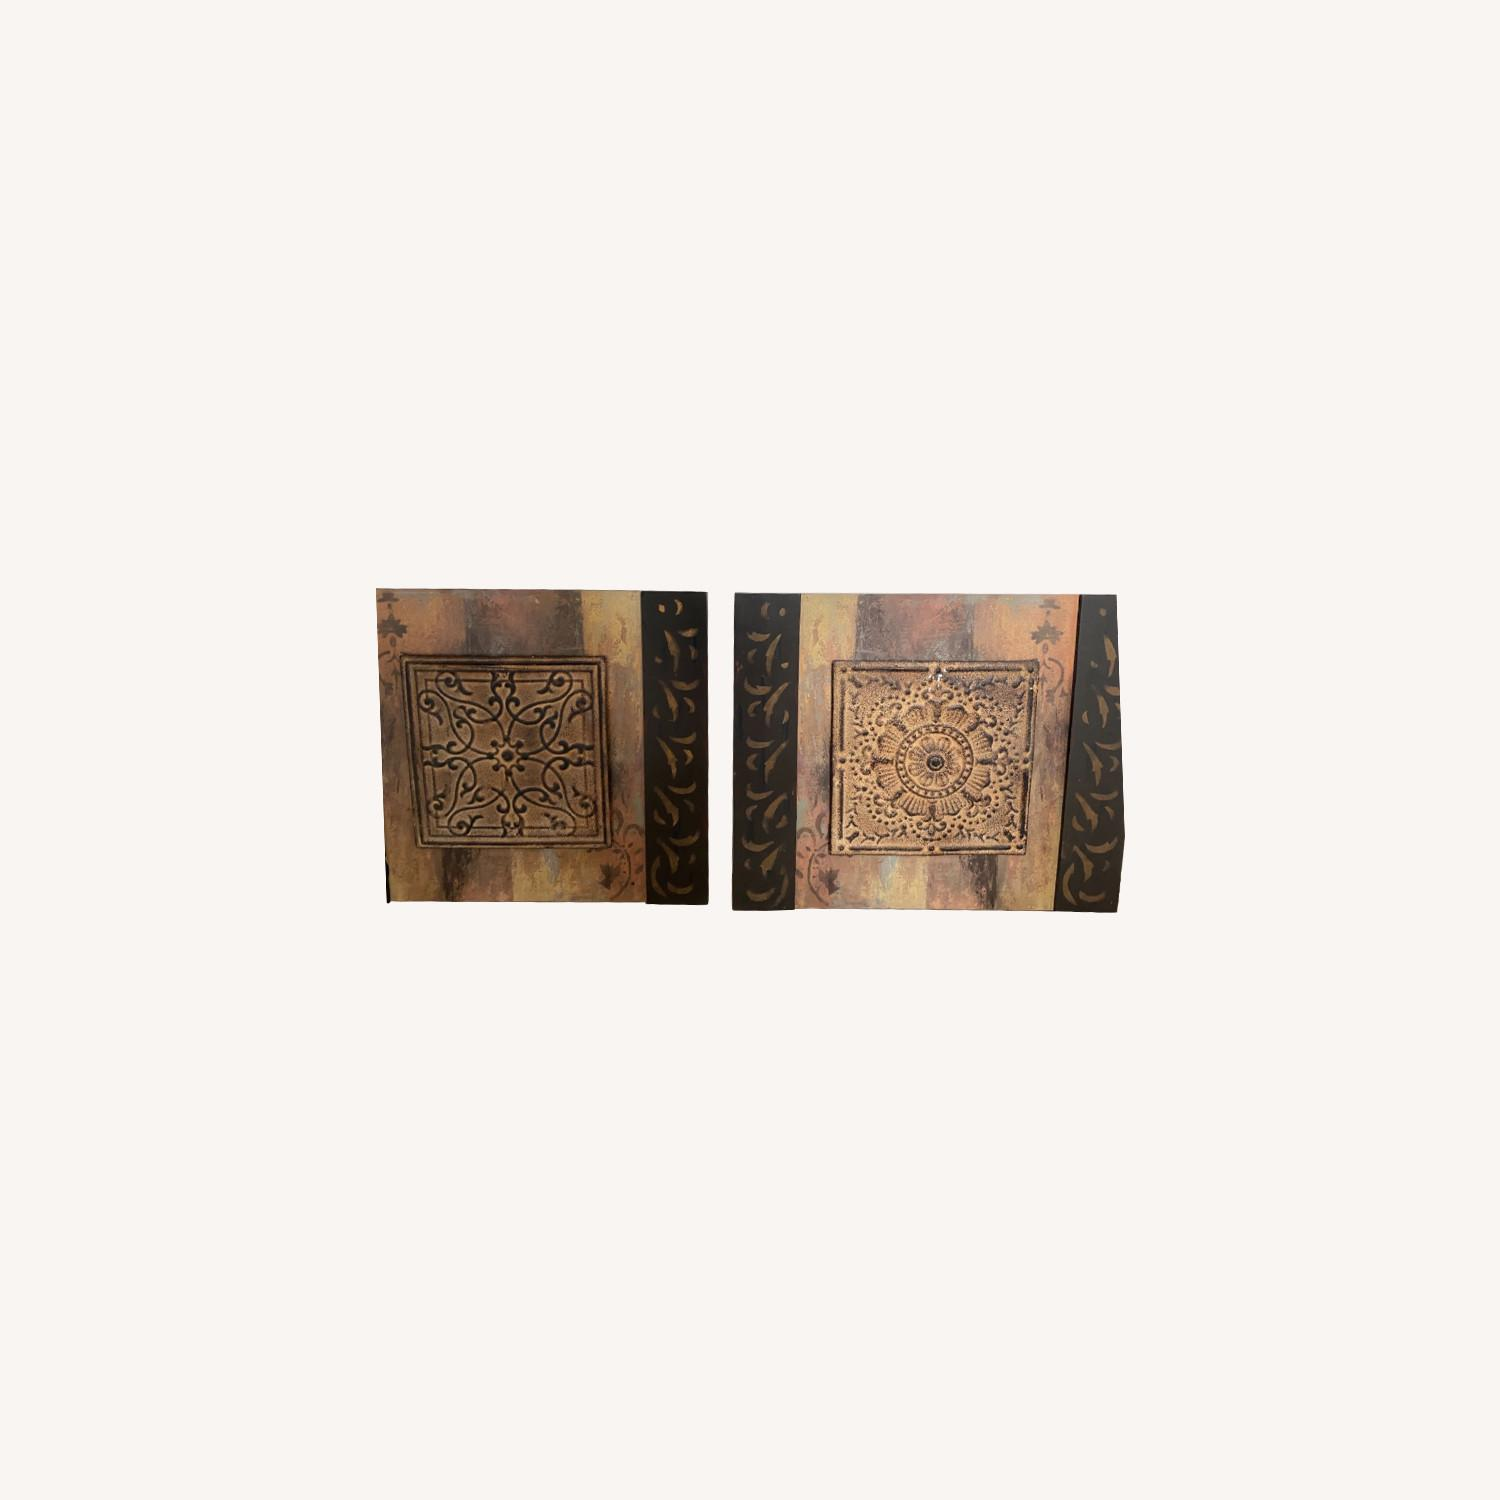 Uttermost Tribal Wall Decor - image-0